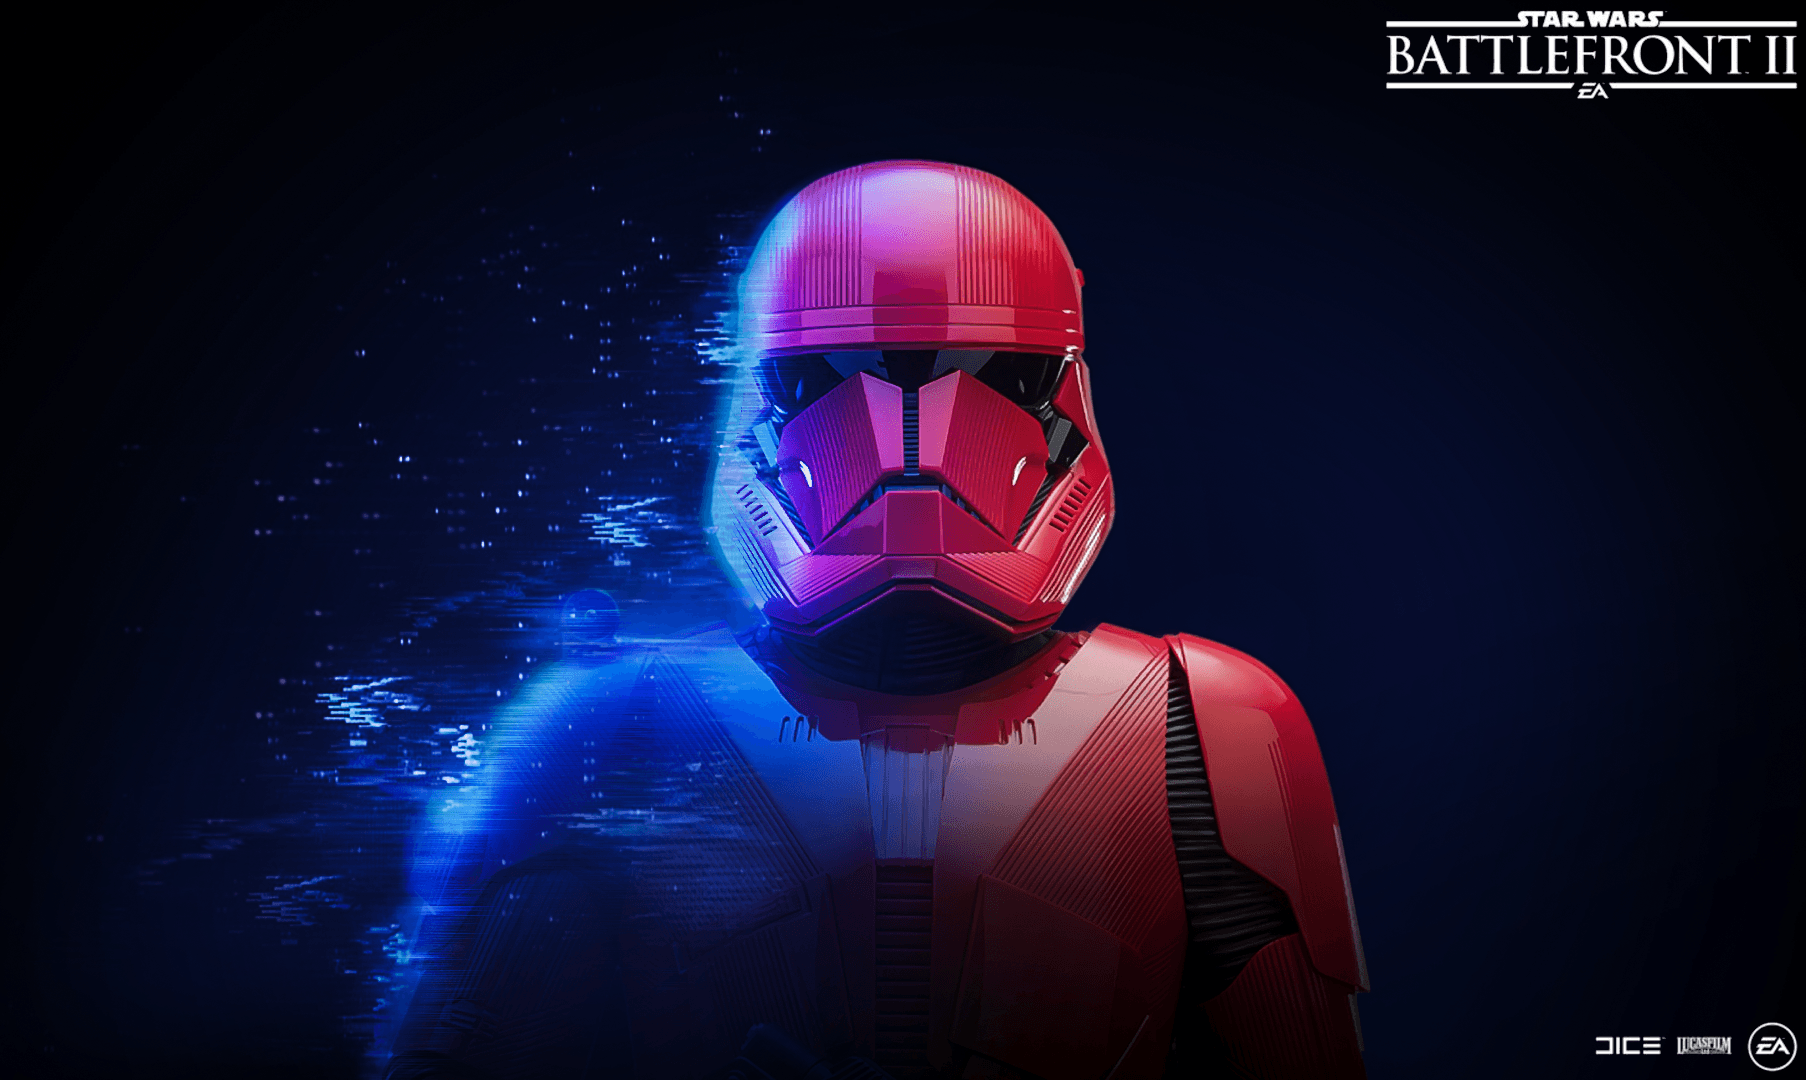 Star Wars Sith Trooper Wallpapers Wallpaper Cave